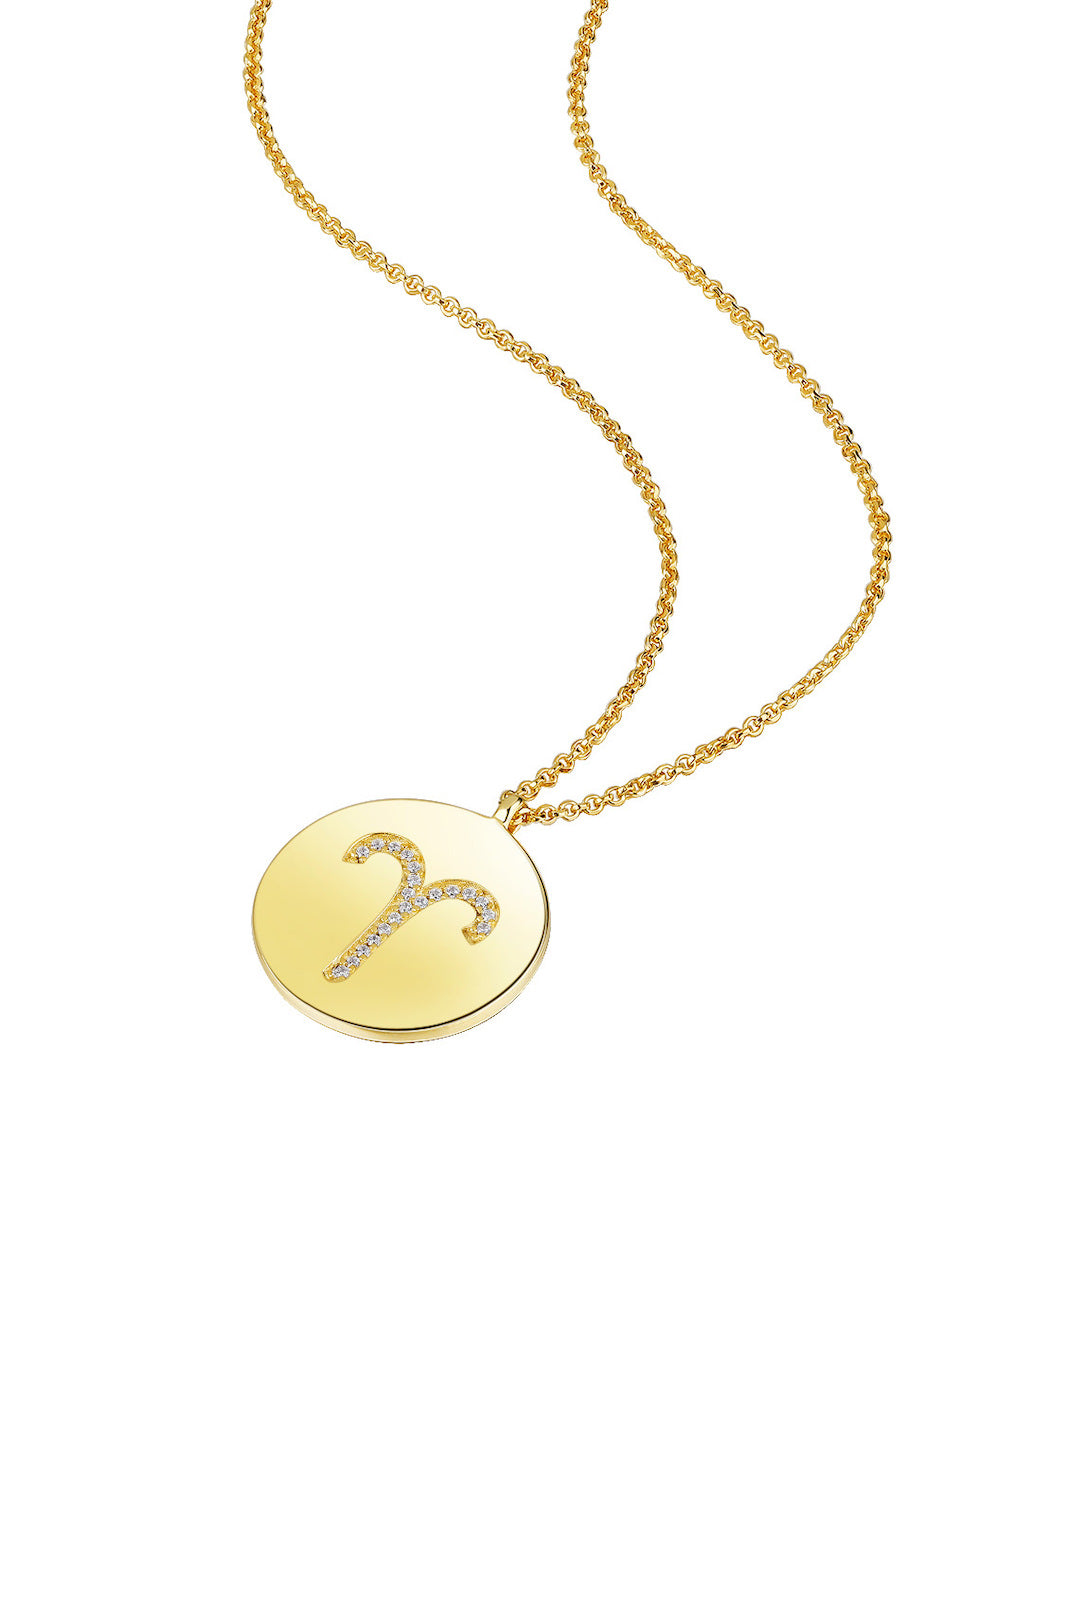 Gold Plated Silver Zodiac Necklace - Aries Side View